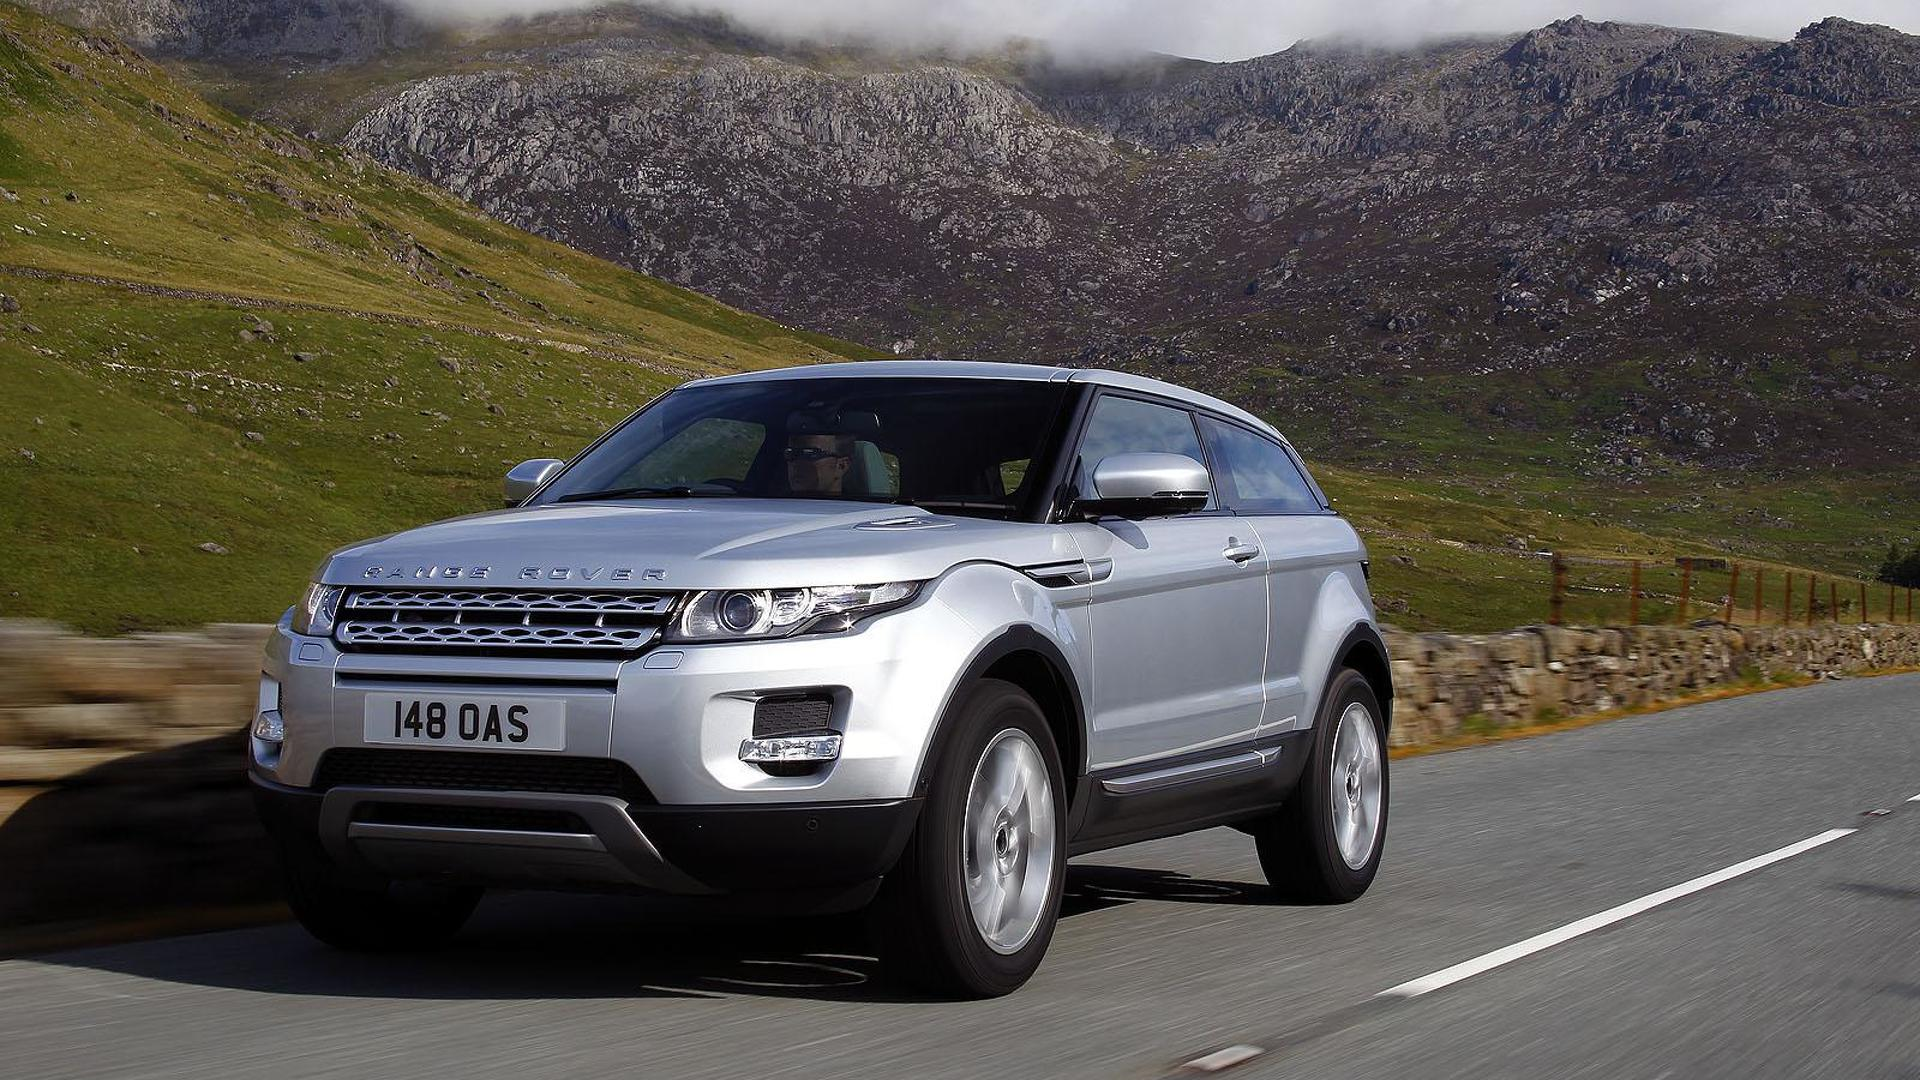 Land Rover Discovery Sport News Articles and Press Releases